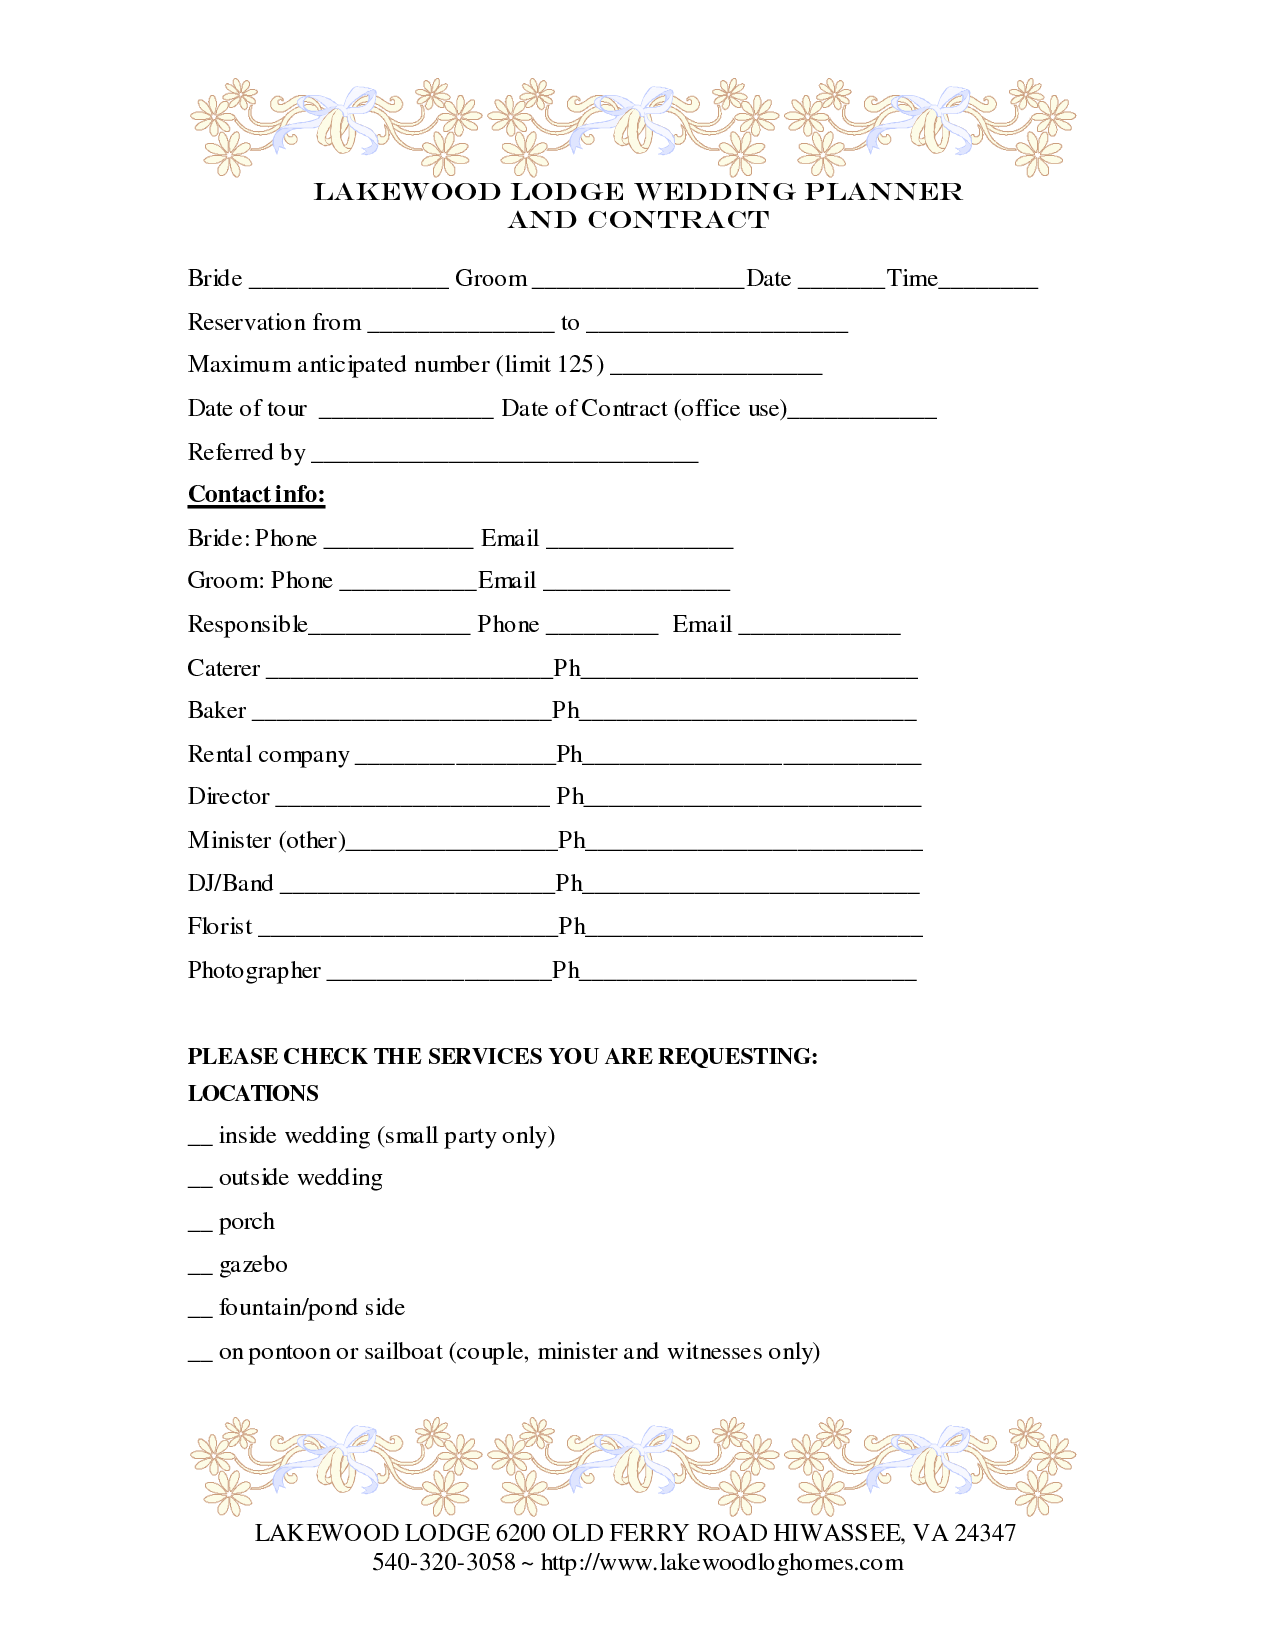 Wedding Planner Contract Template  Weddings Decorations